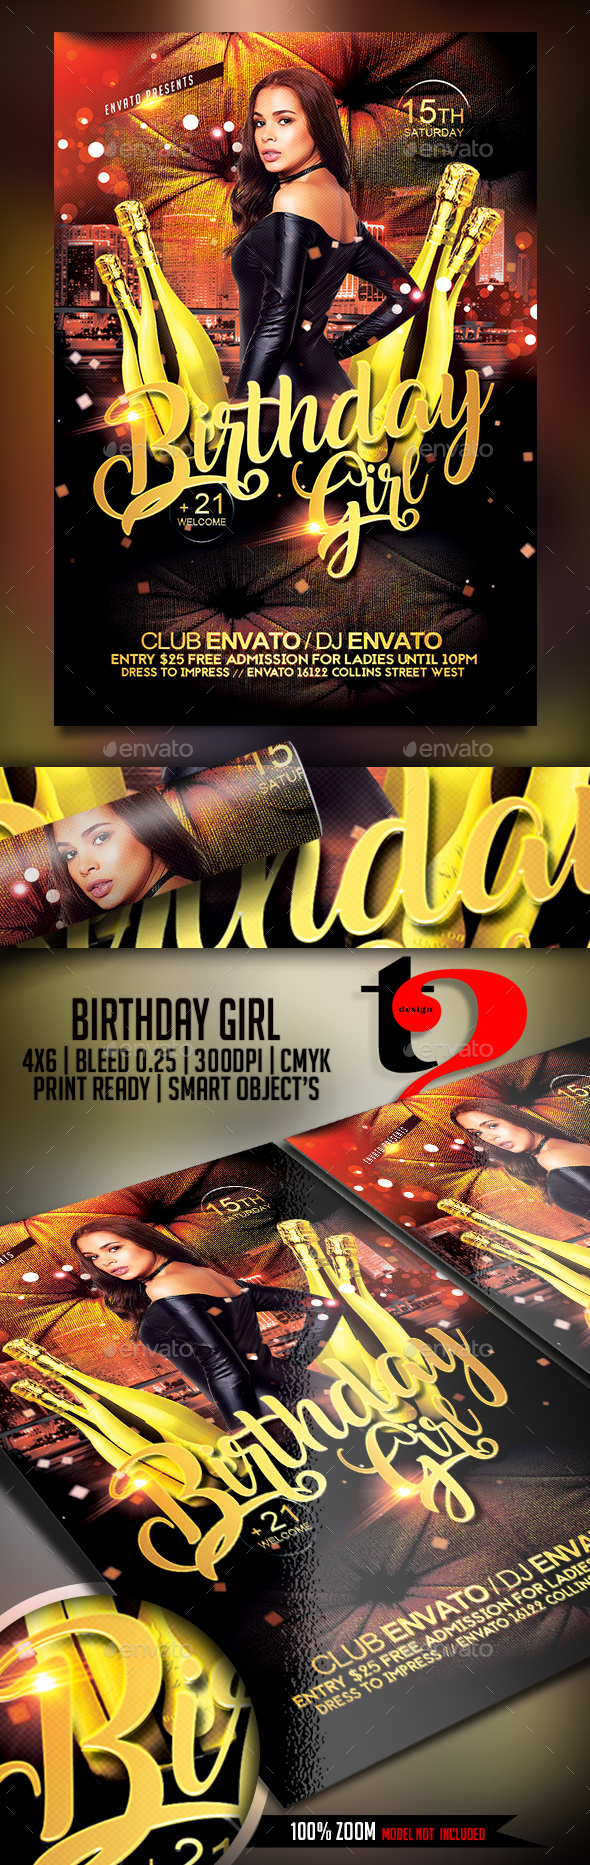 Birthday Girl Flyer Template - Clubs & Parties Events